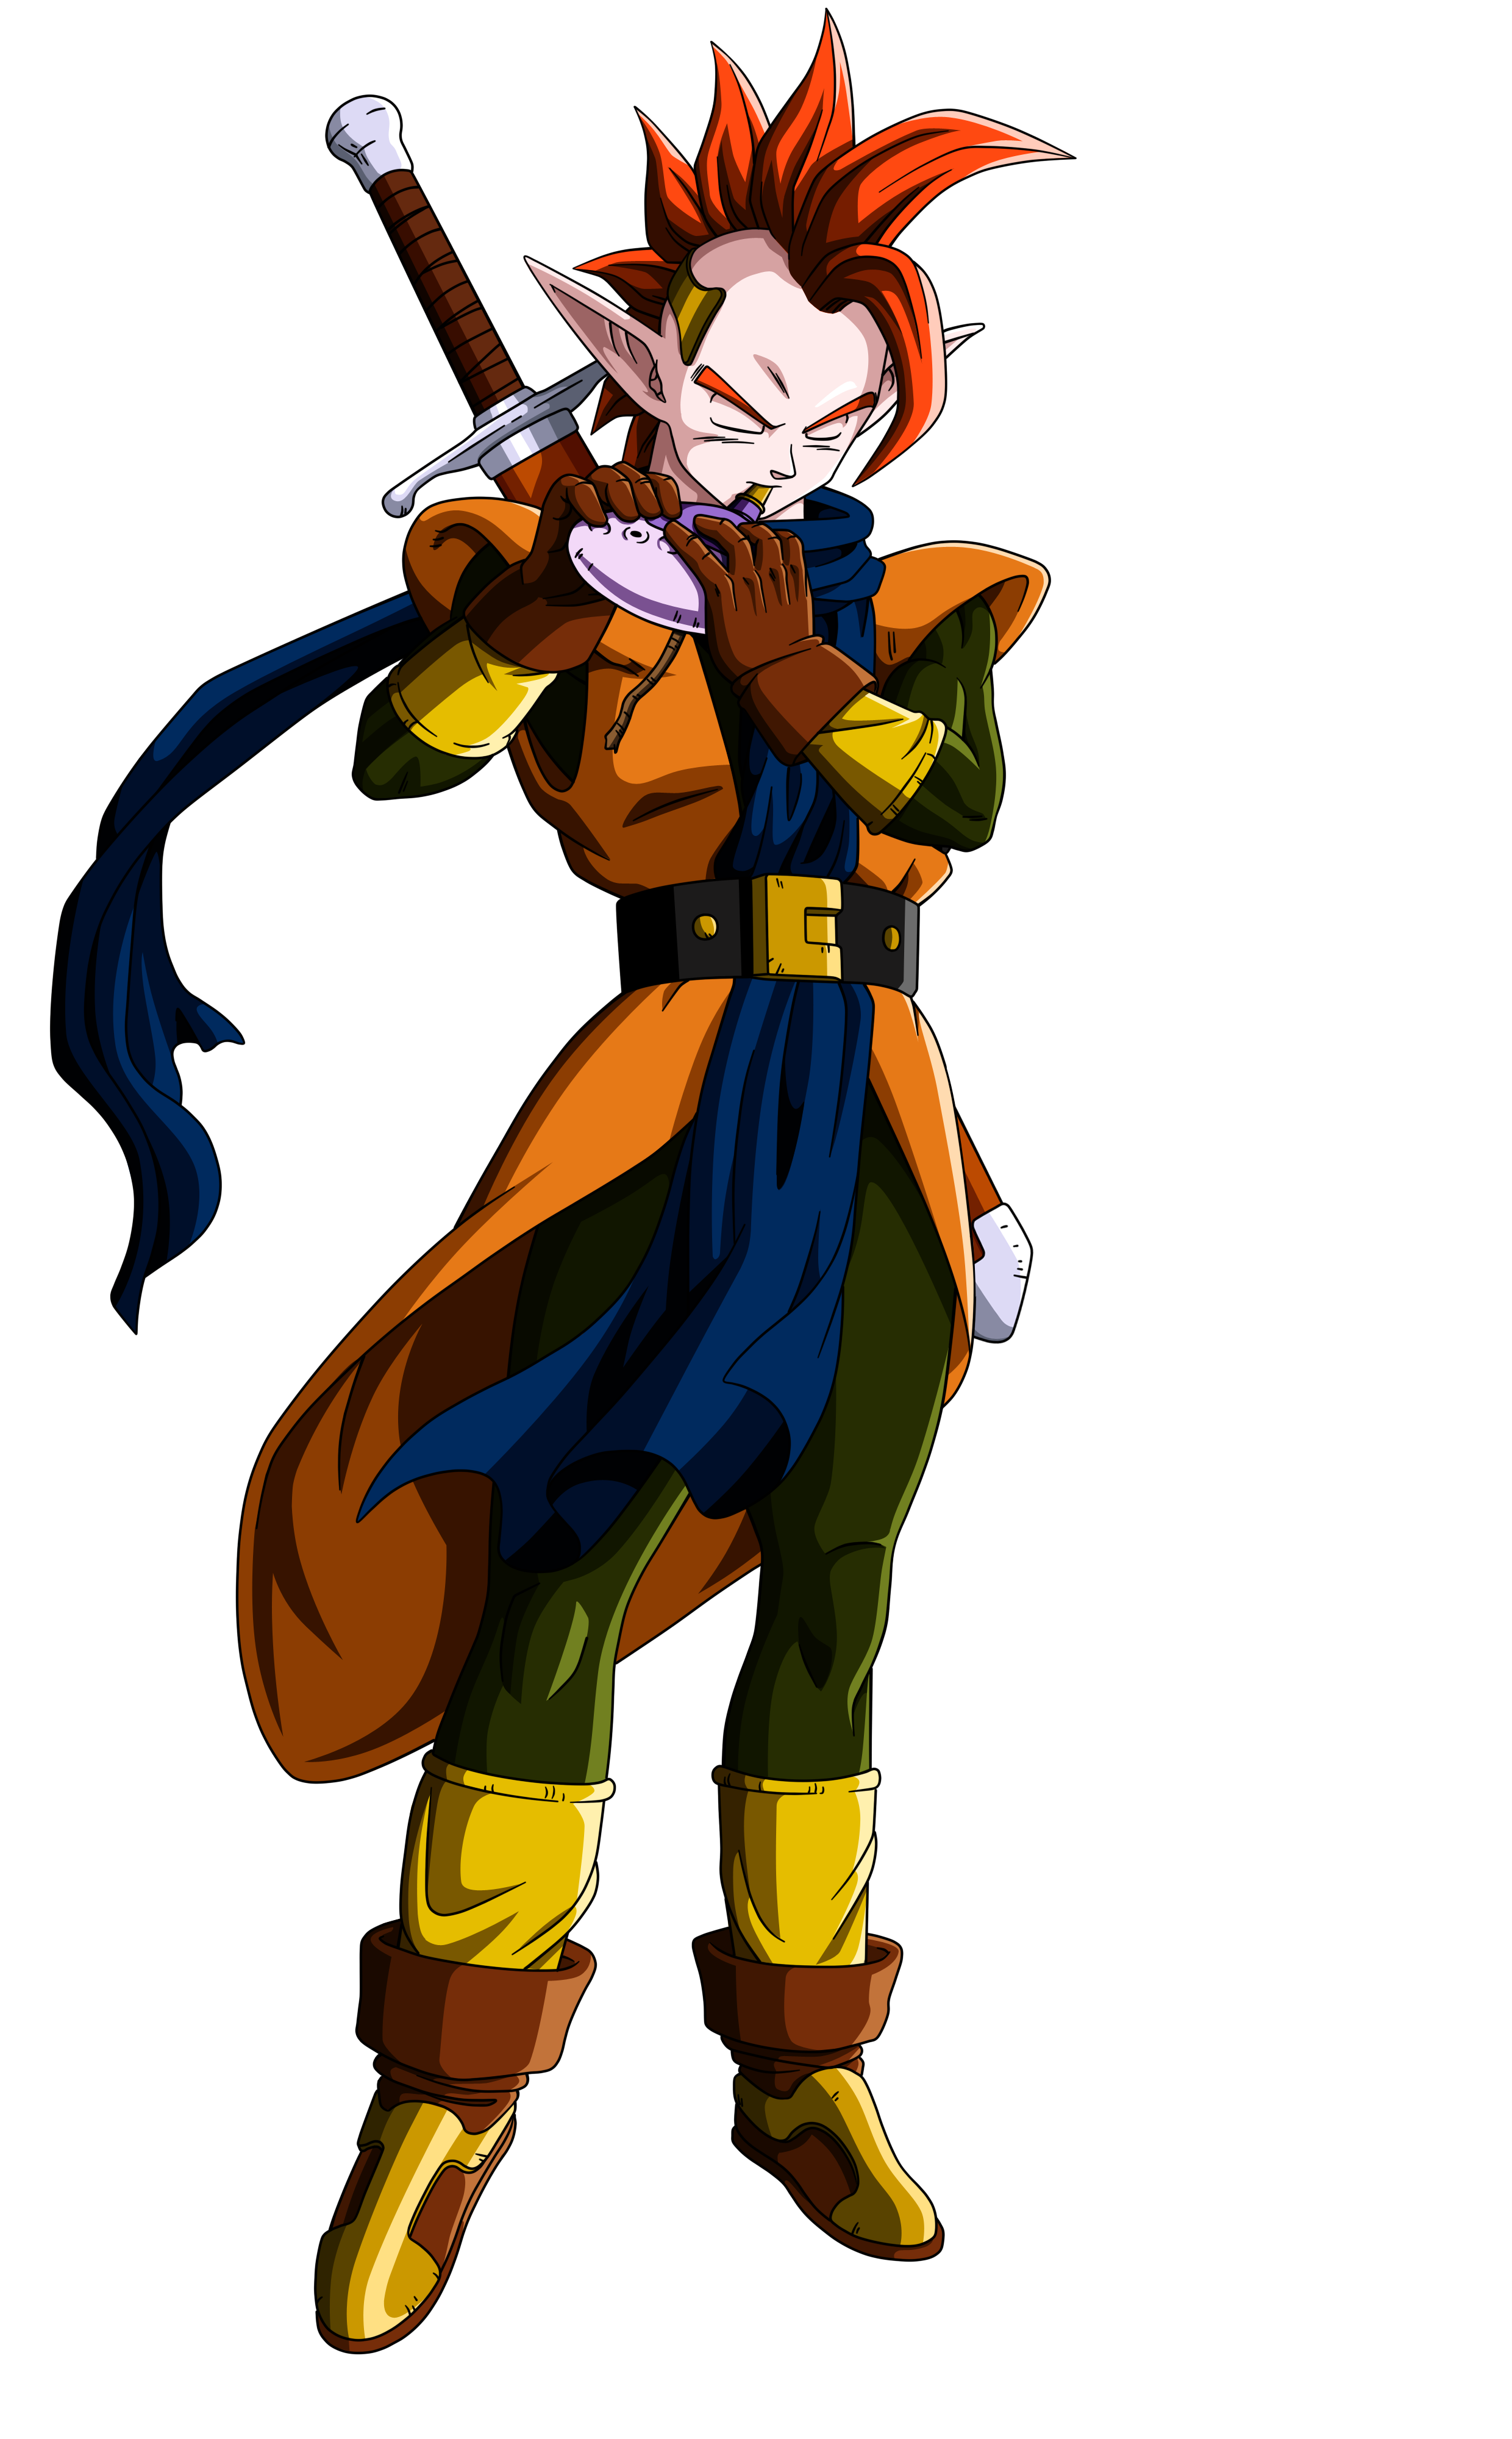 Dragon ball z characters png. Tapion by orco on